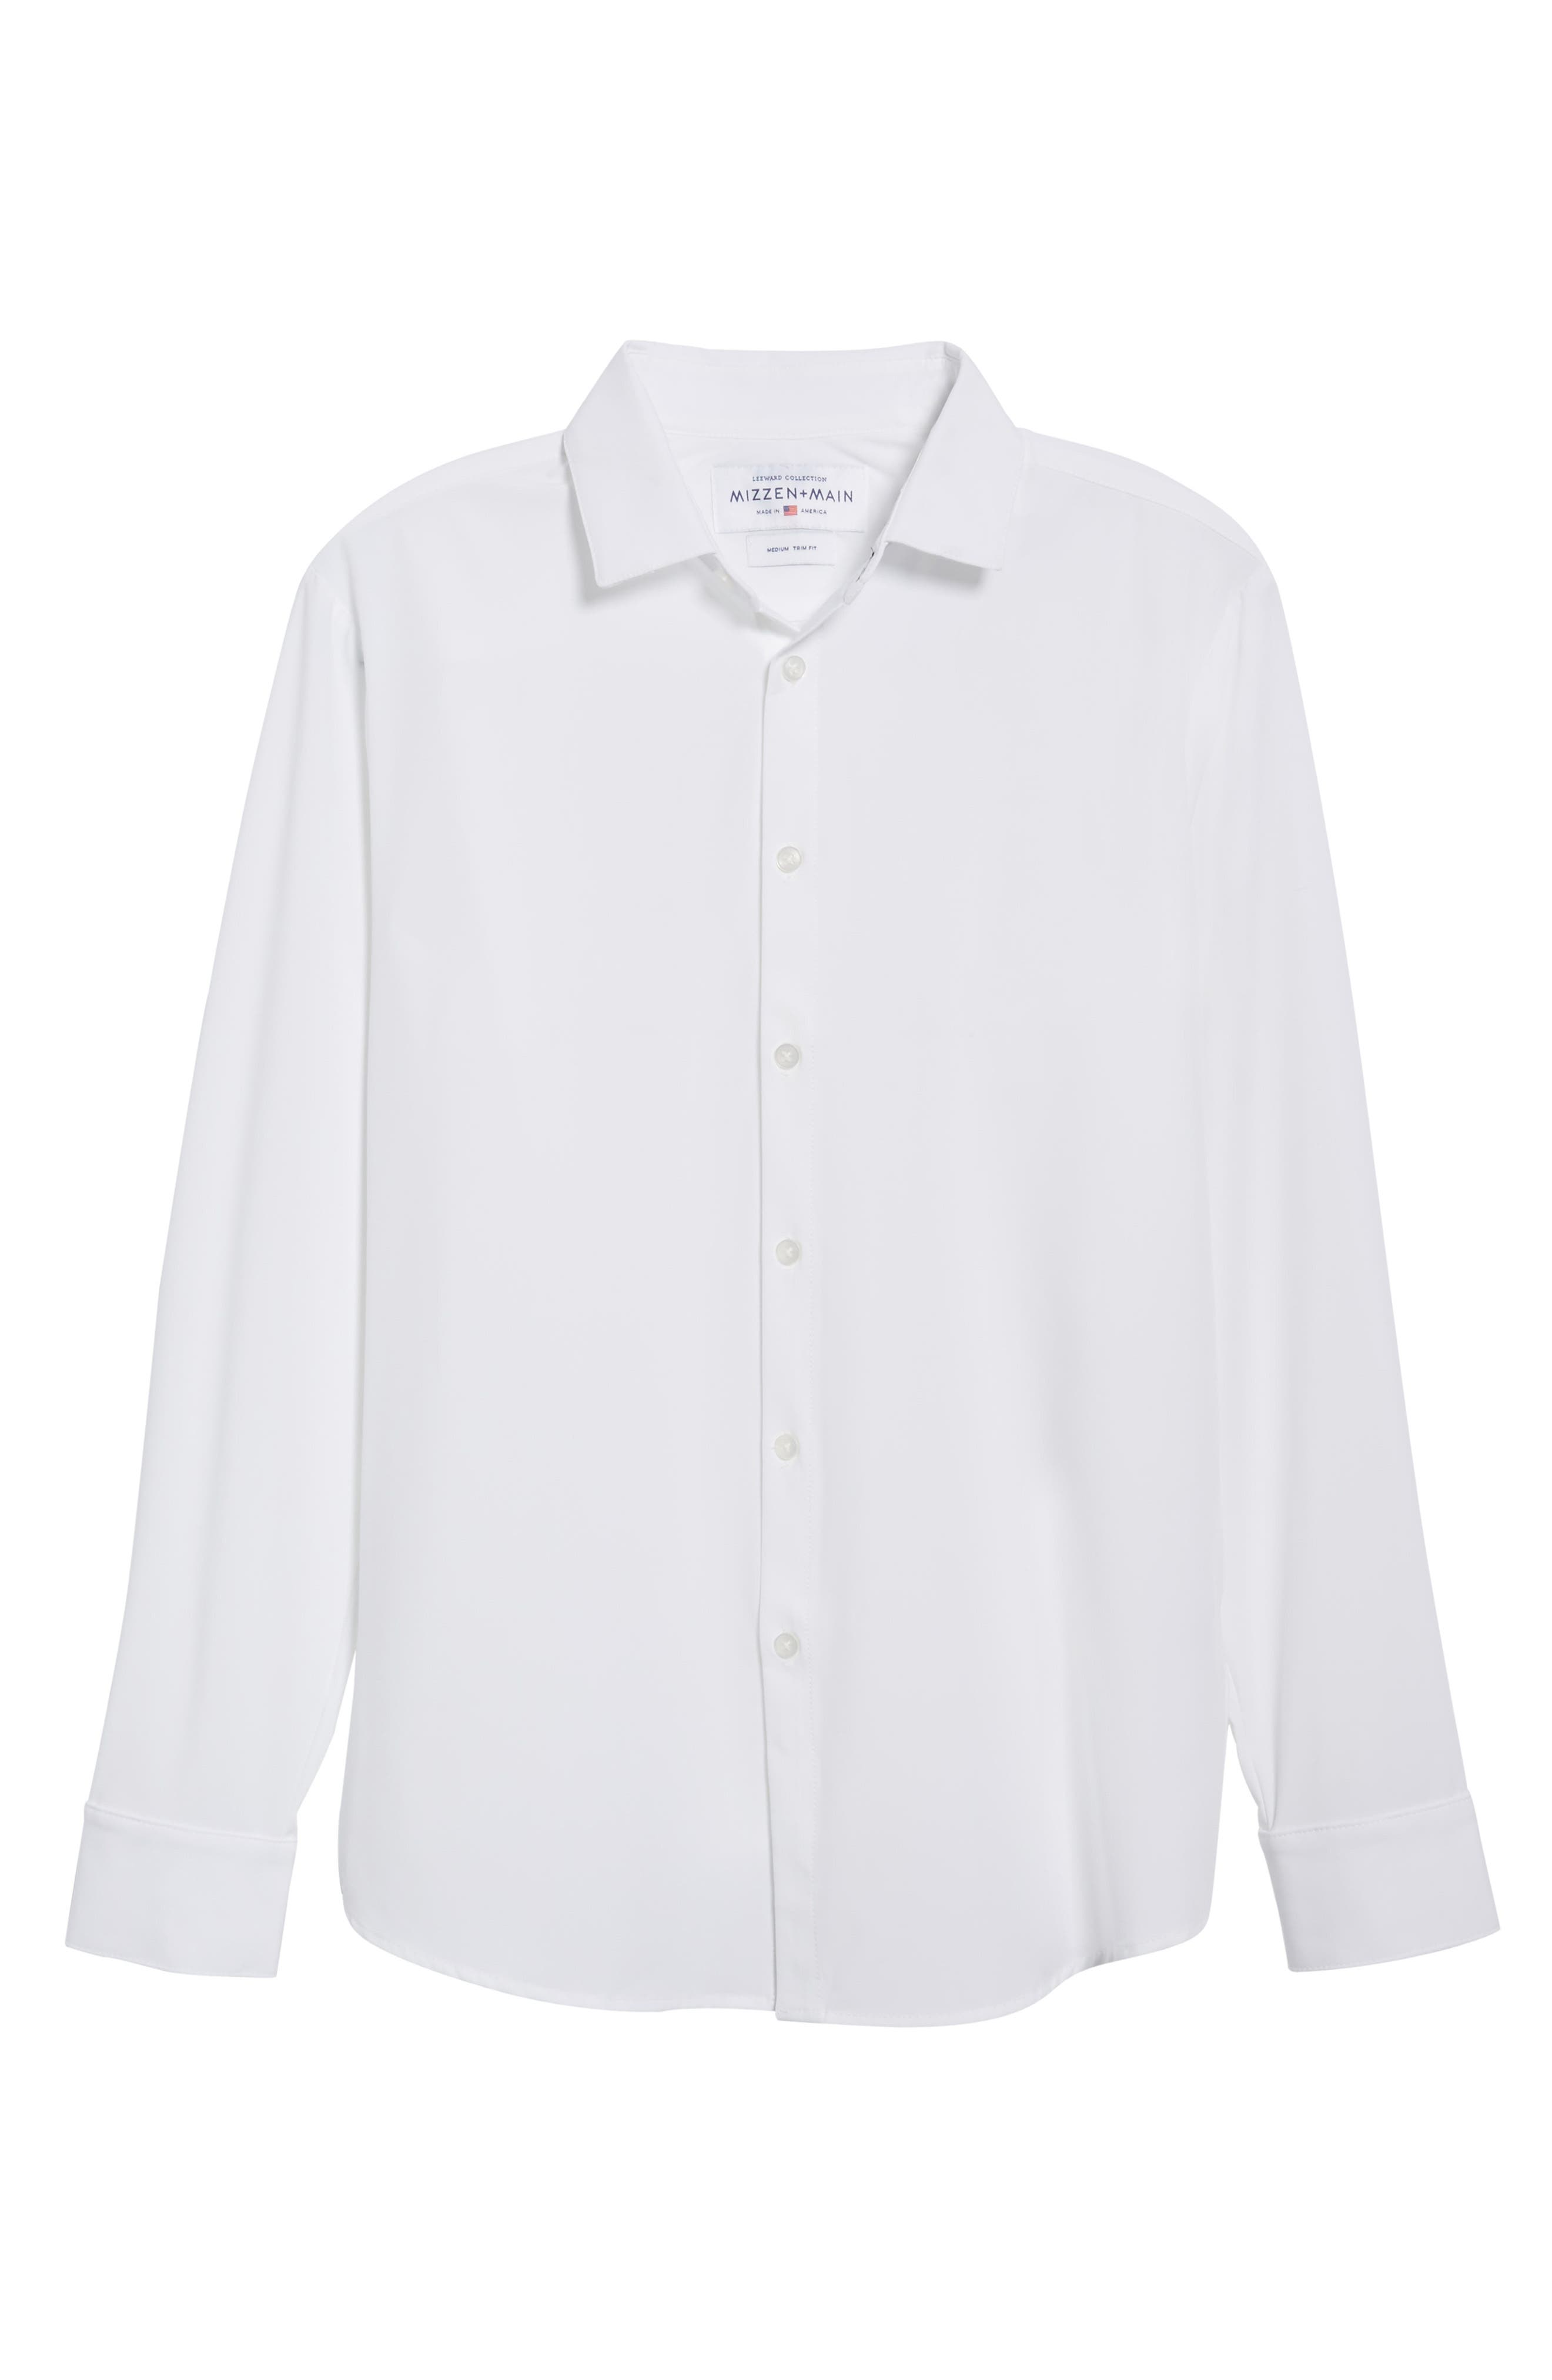 Manhattan Sport Shirt,                             Alternate thumbnail 6, color,                             White